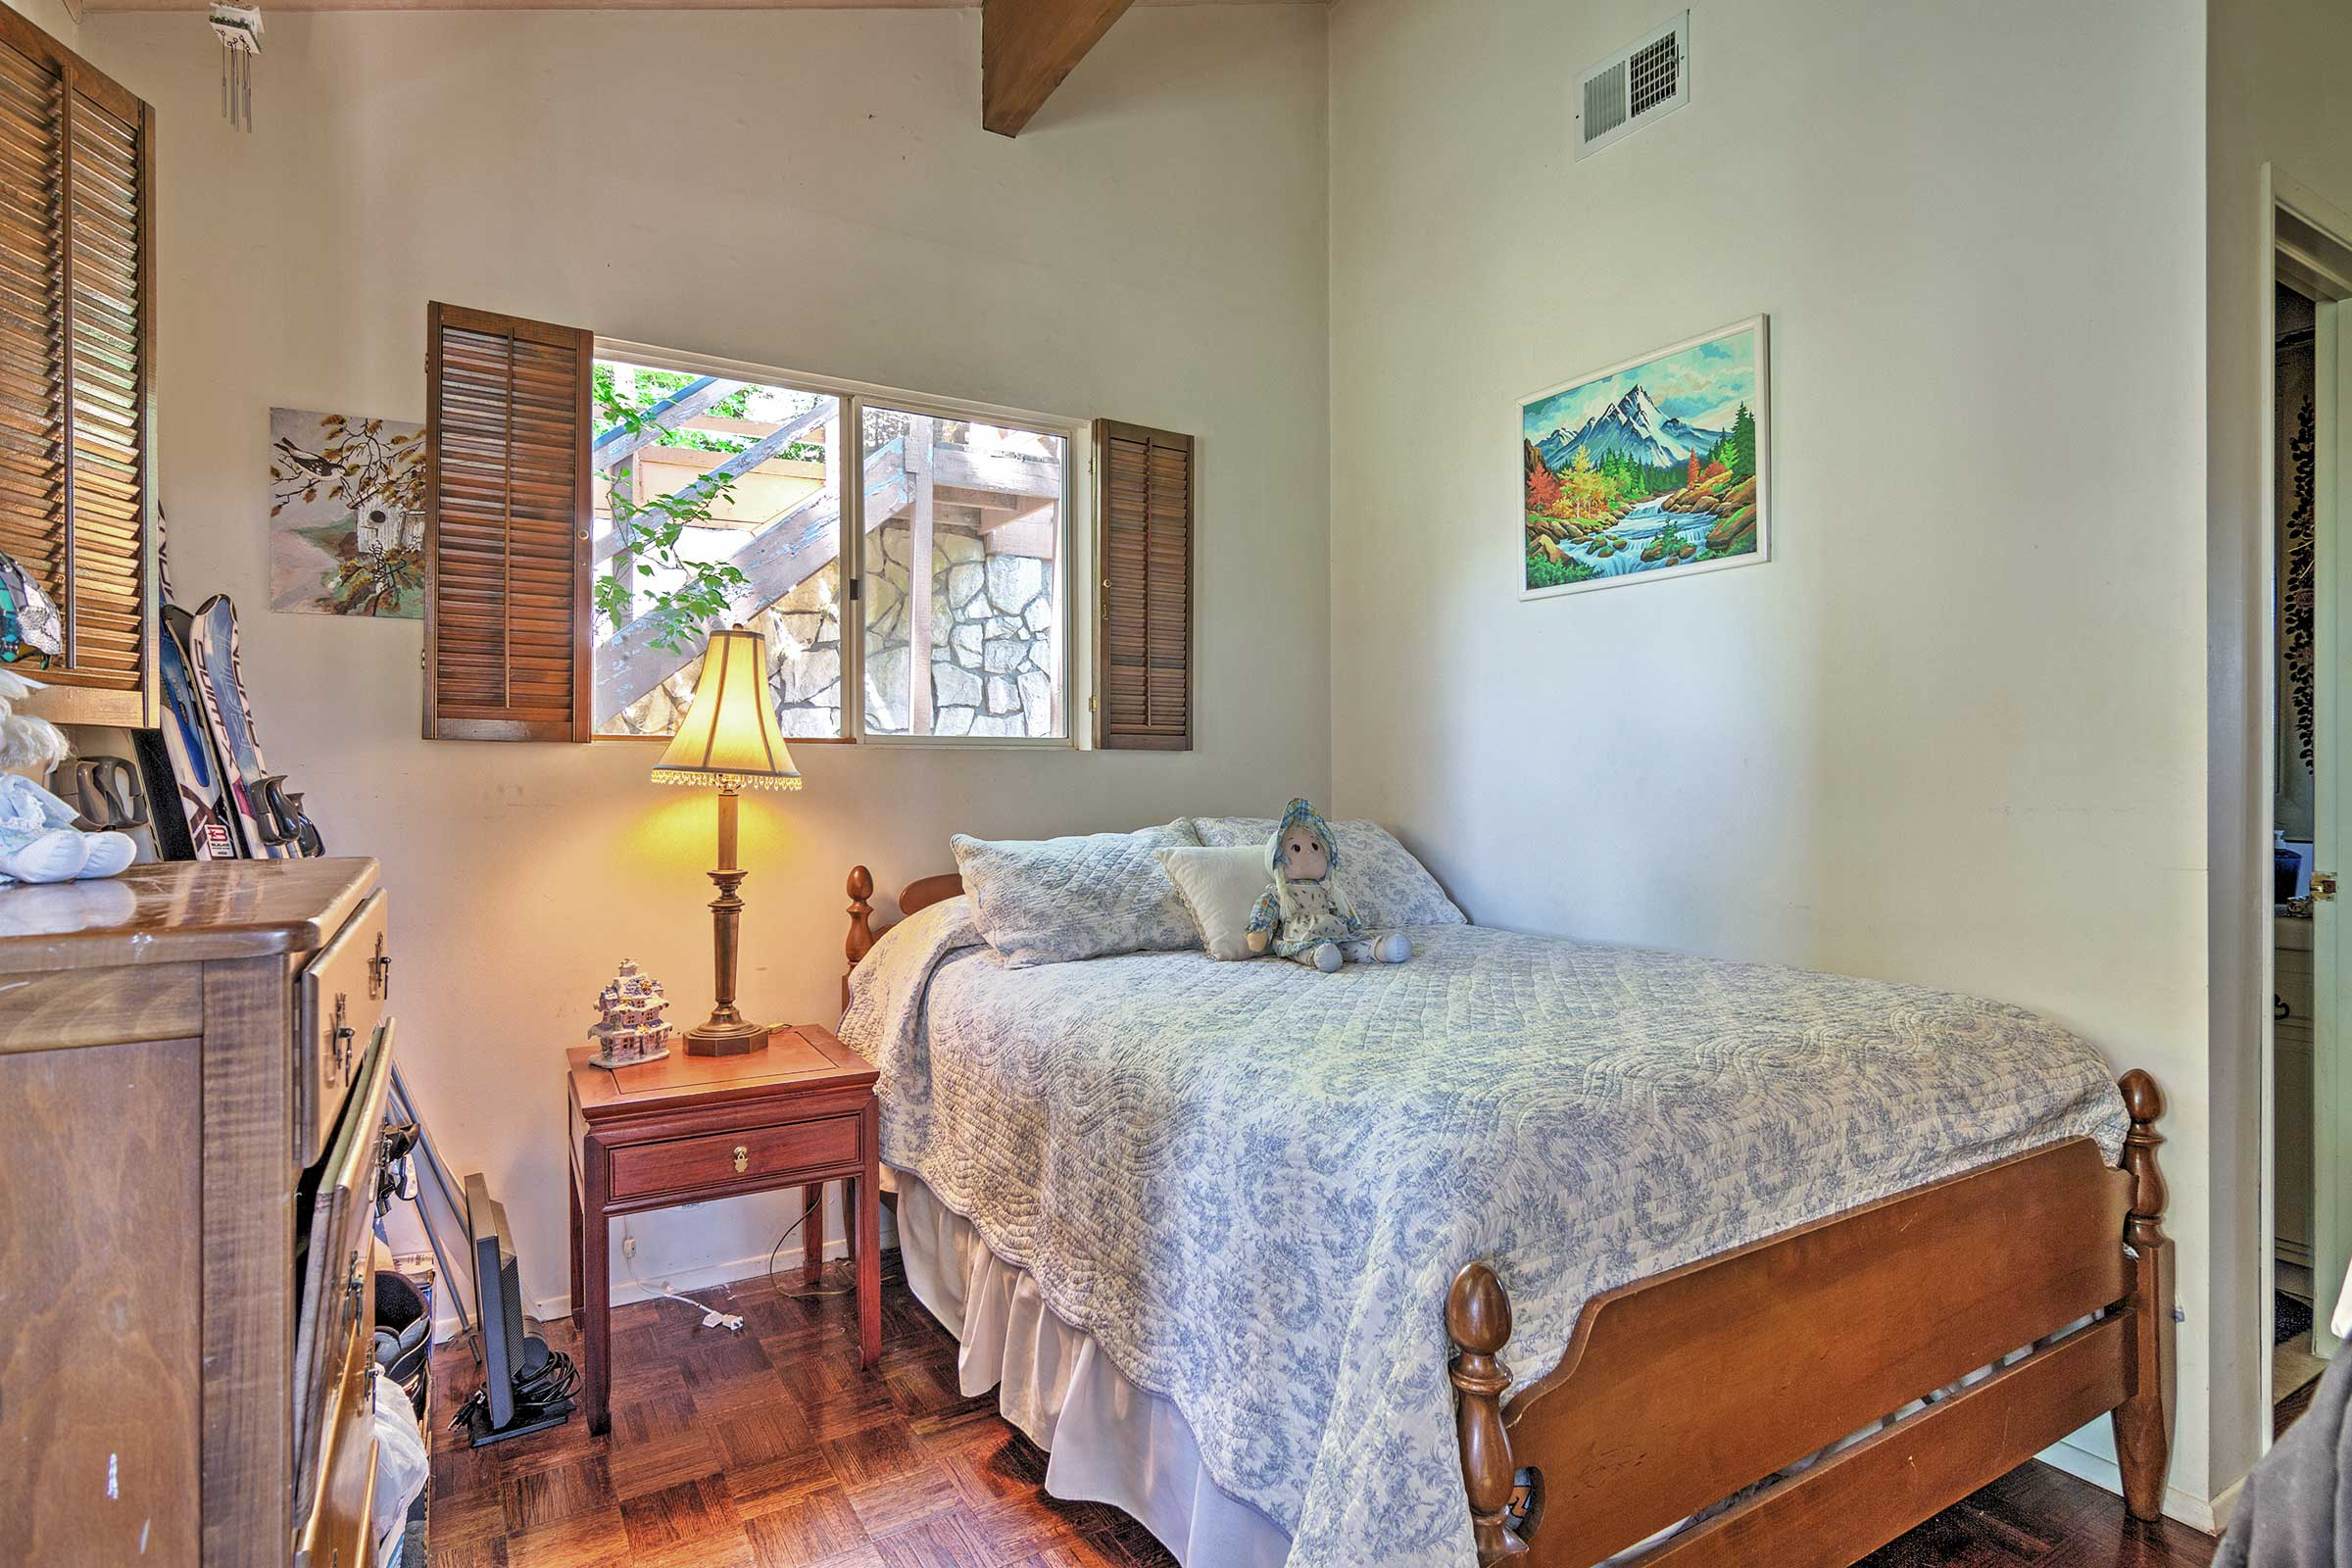 A restful night's sleep can be found on this comfy full-sized bed.